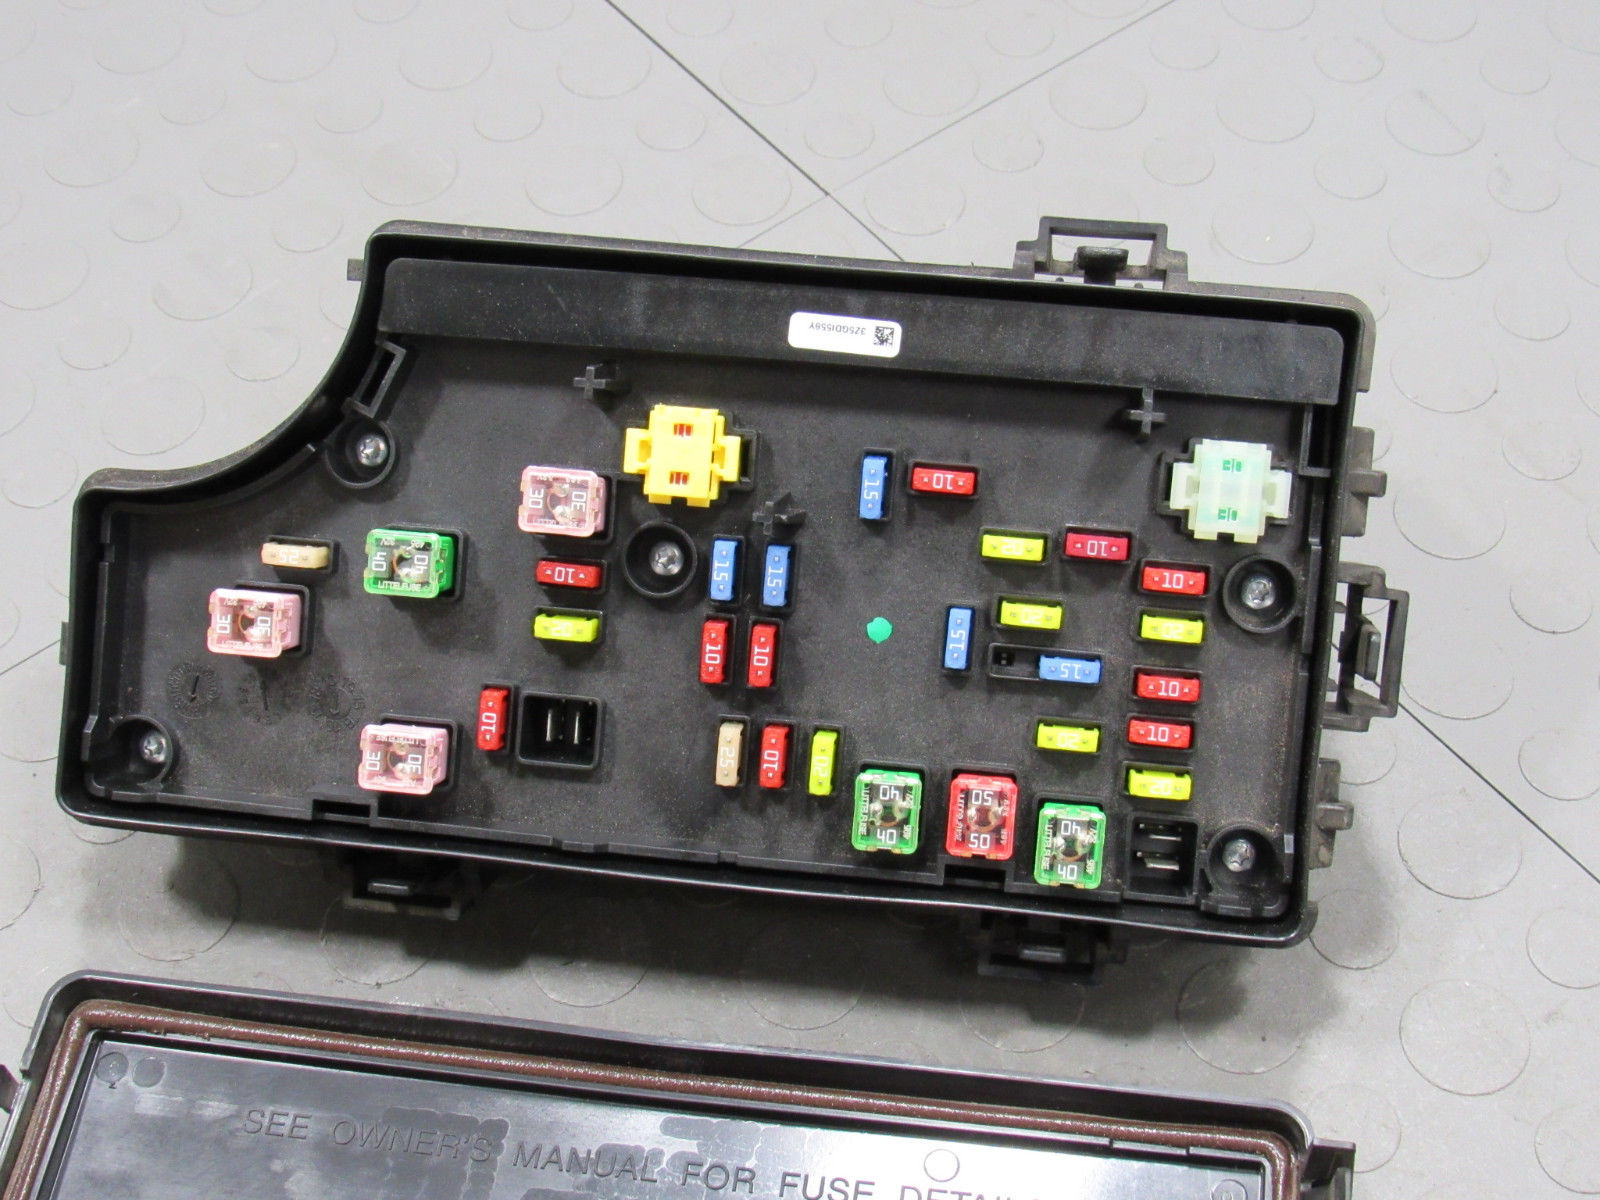 2006 Pt Cruiser Fuse Box For Sale : Pt cruiser tipm bcm totally integrated power module